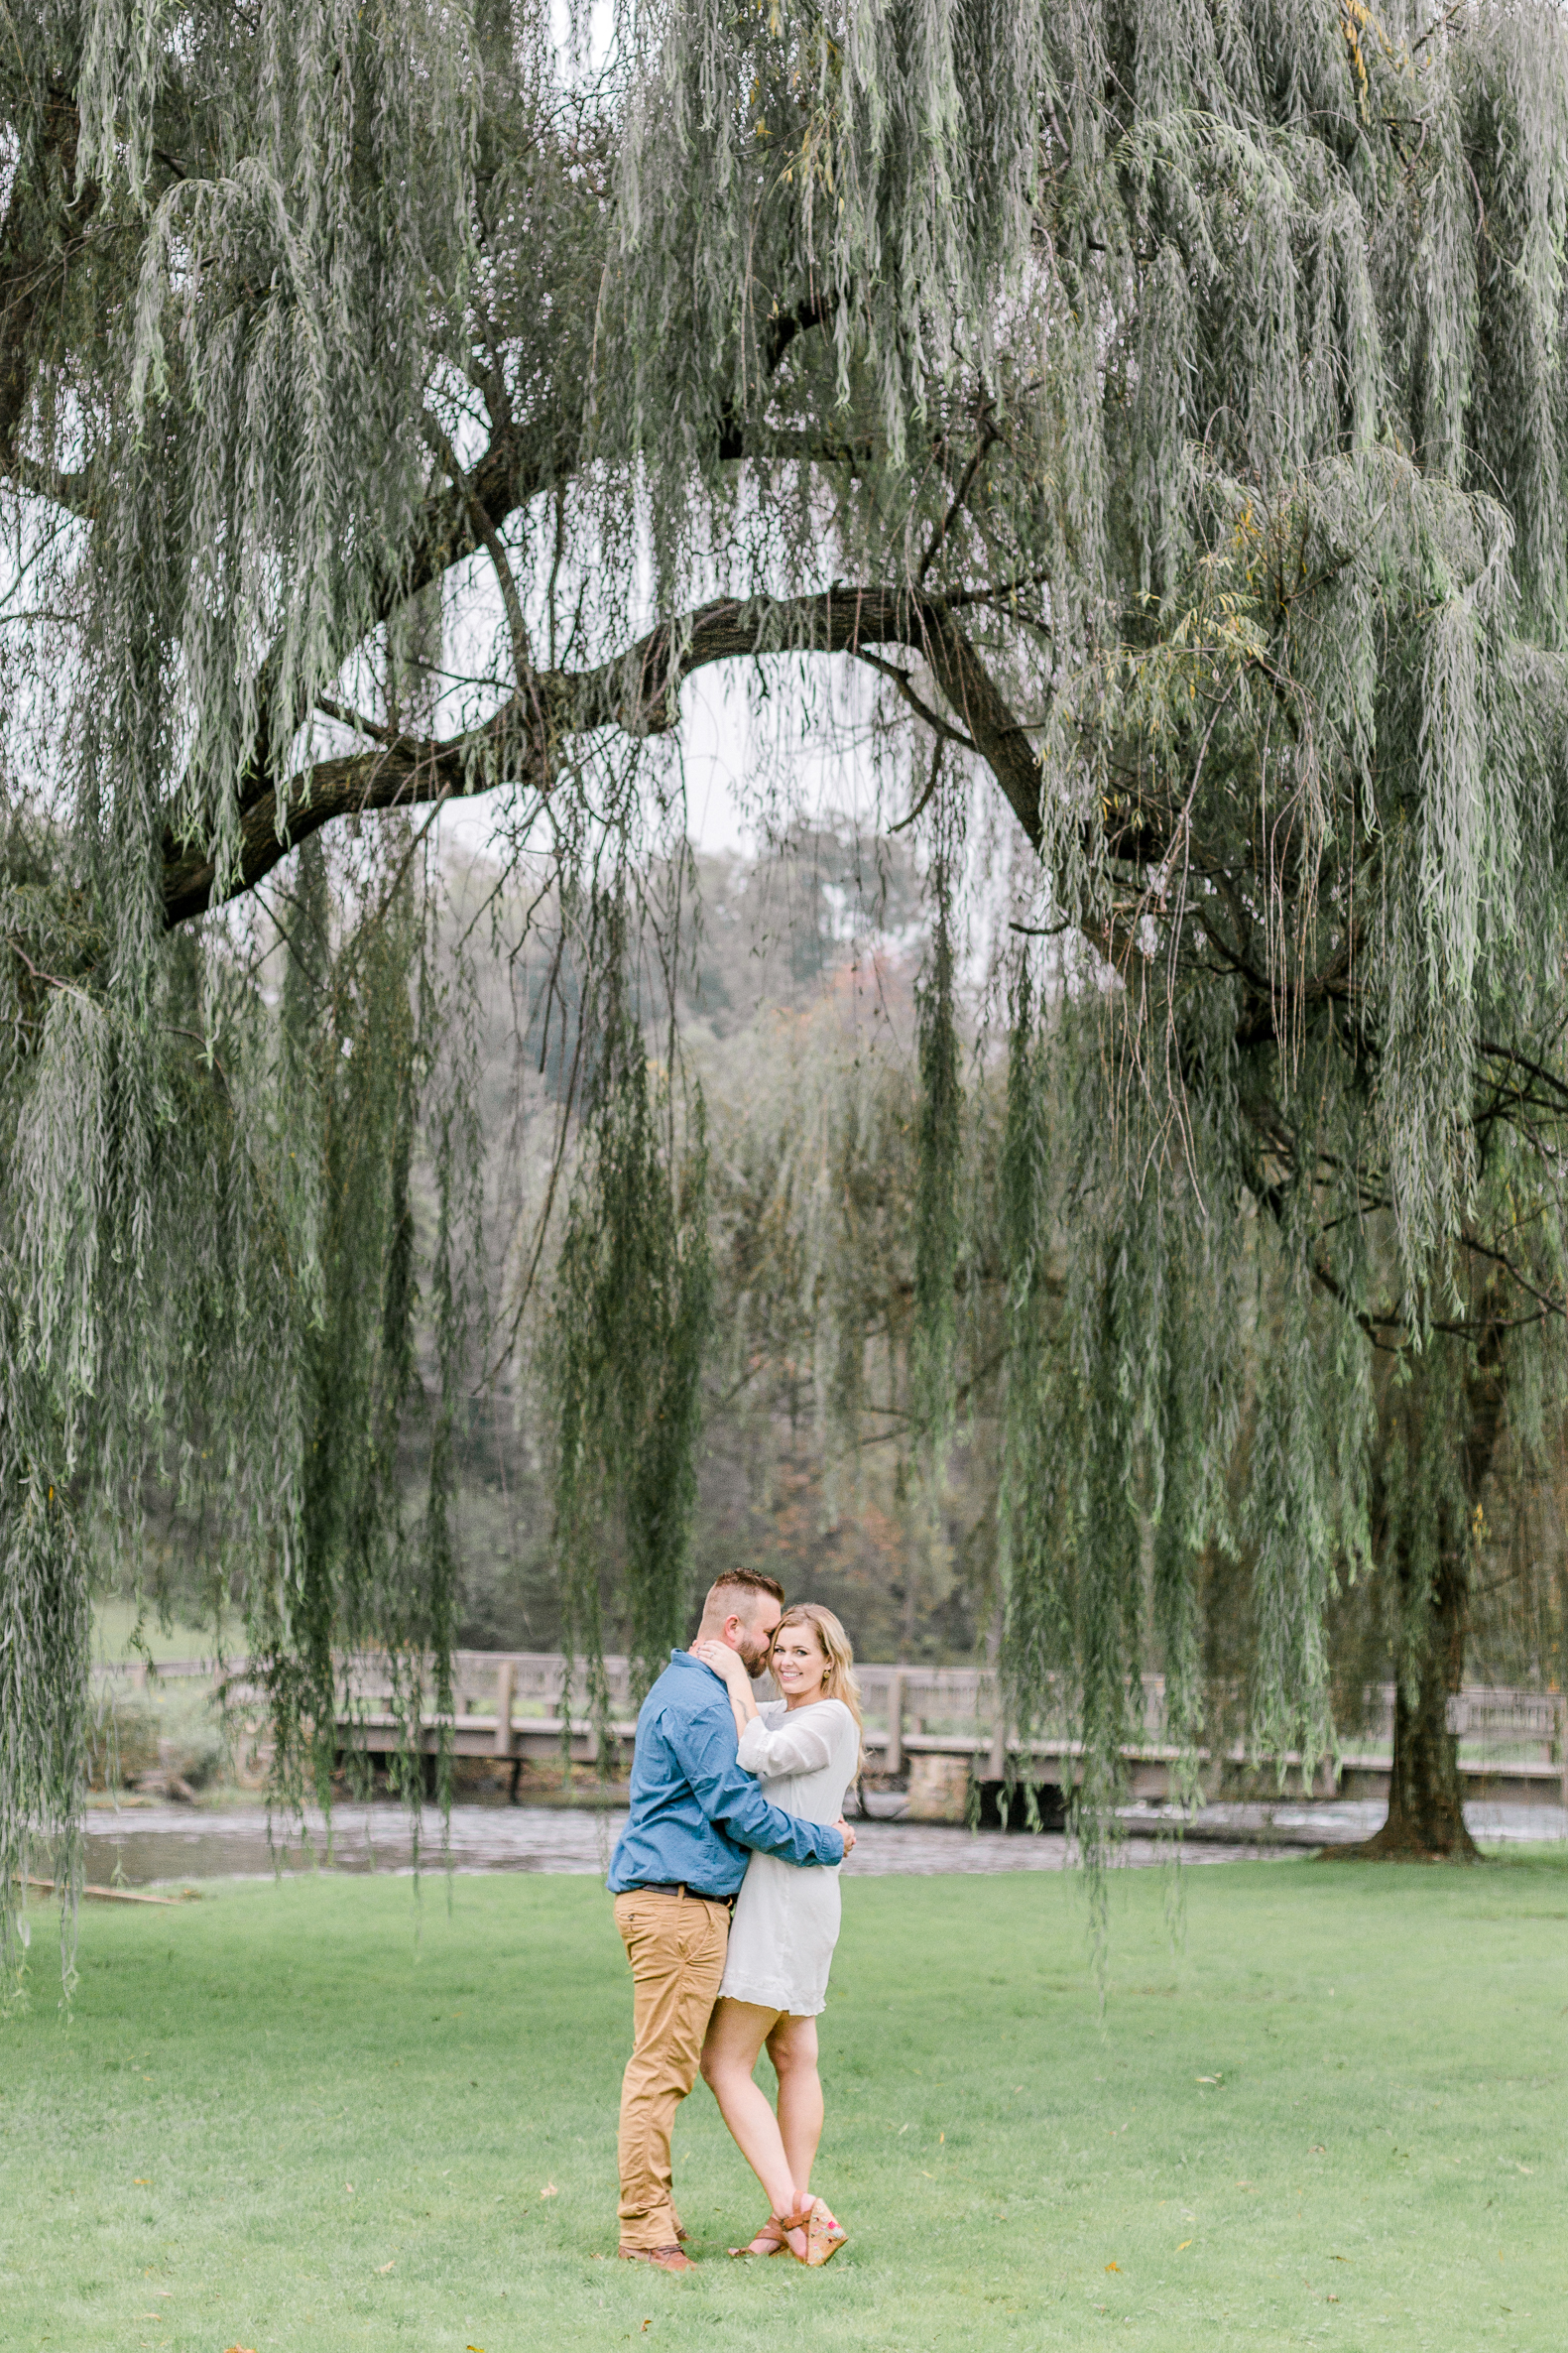 Li'l-Le-Hi Trout Nursery Fish hatchery fall engagement session Lehigh valley wedding photographer Lytle Photo Co (90 of 93).jpg